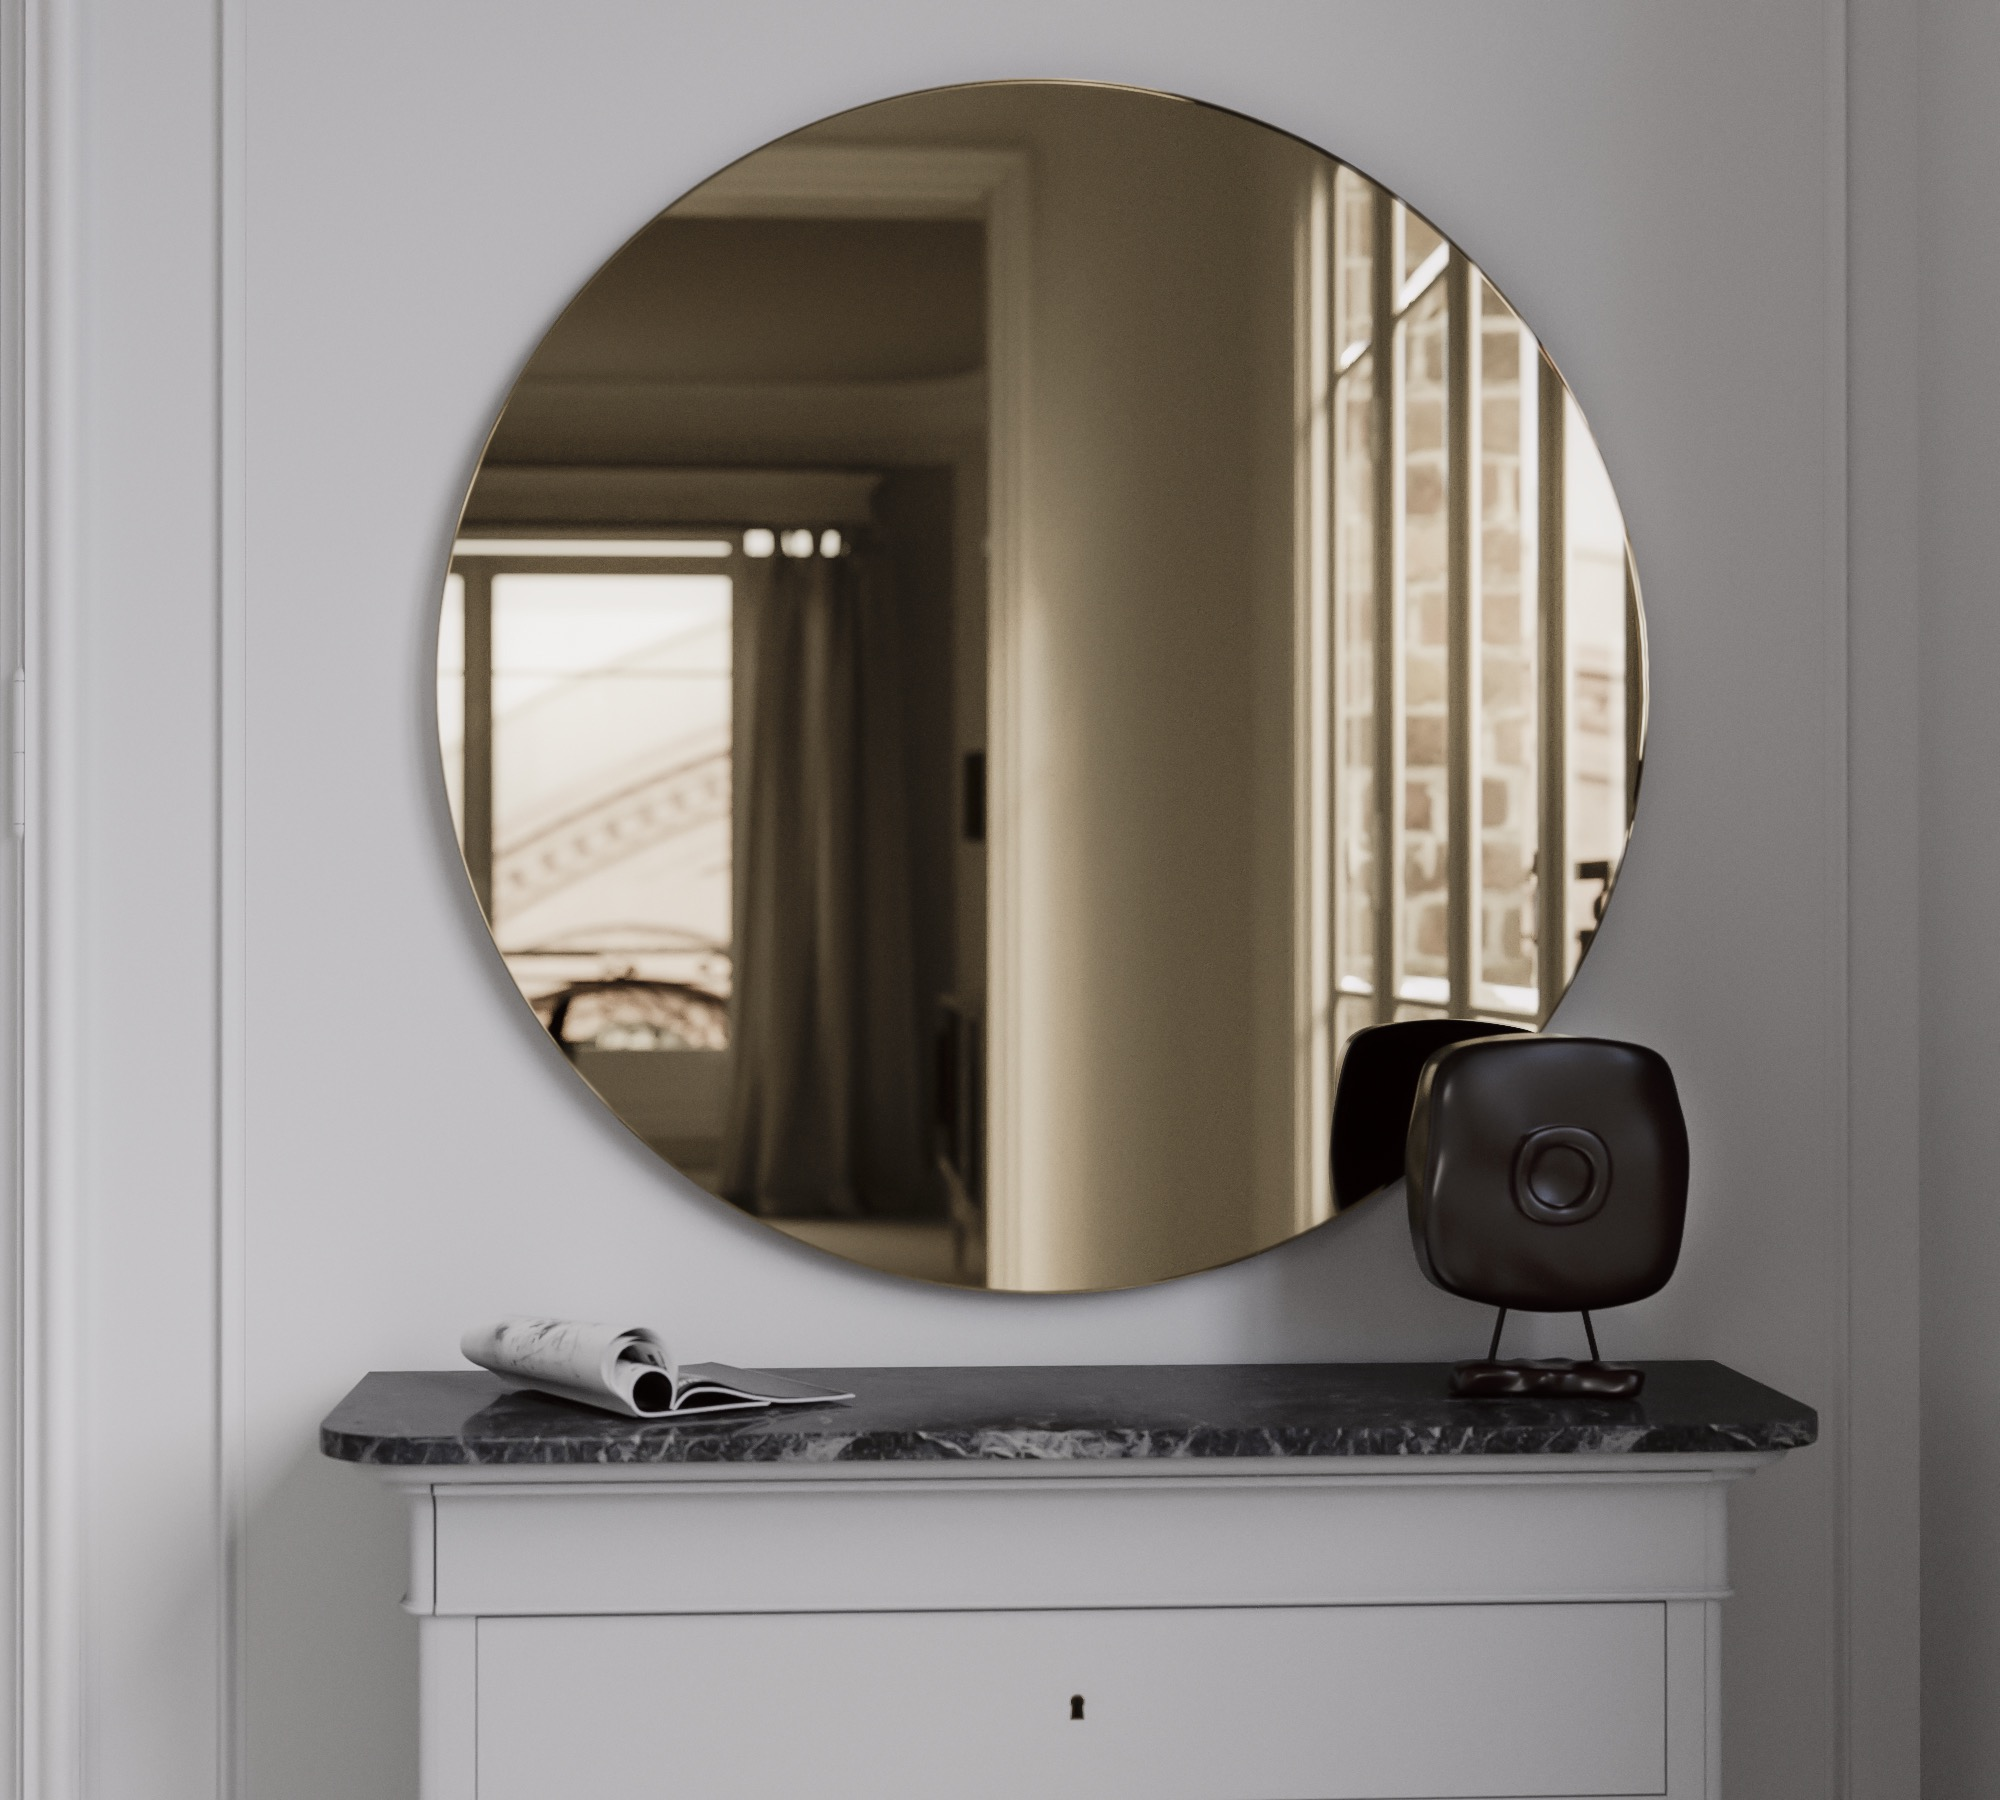 Golden Round Mirror without Clear Overlay